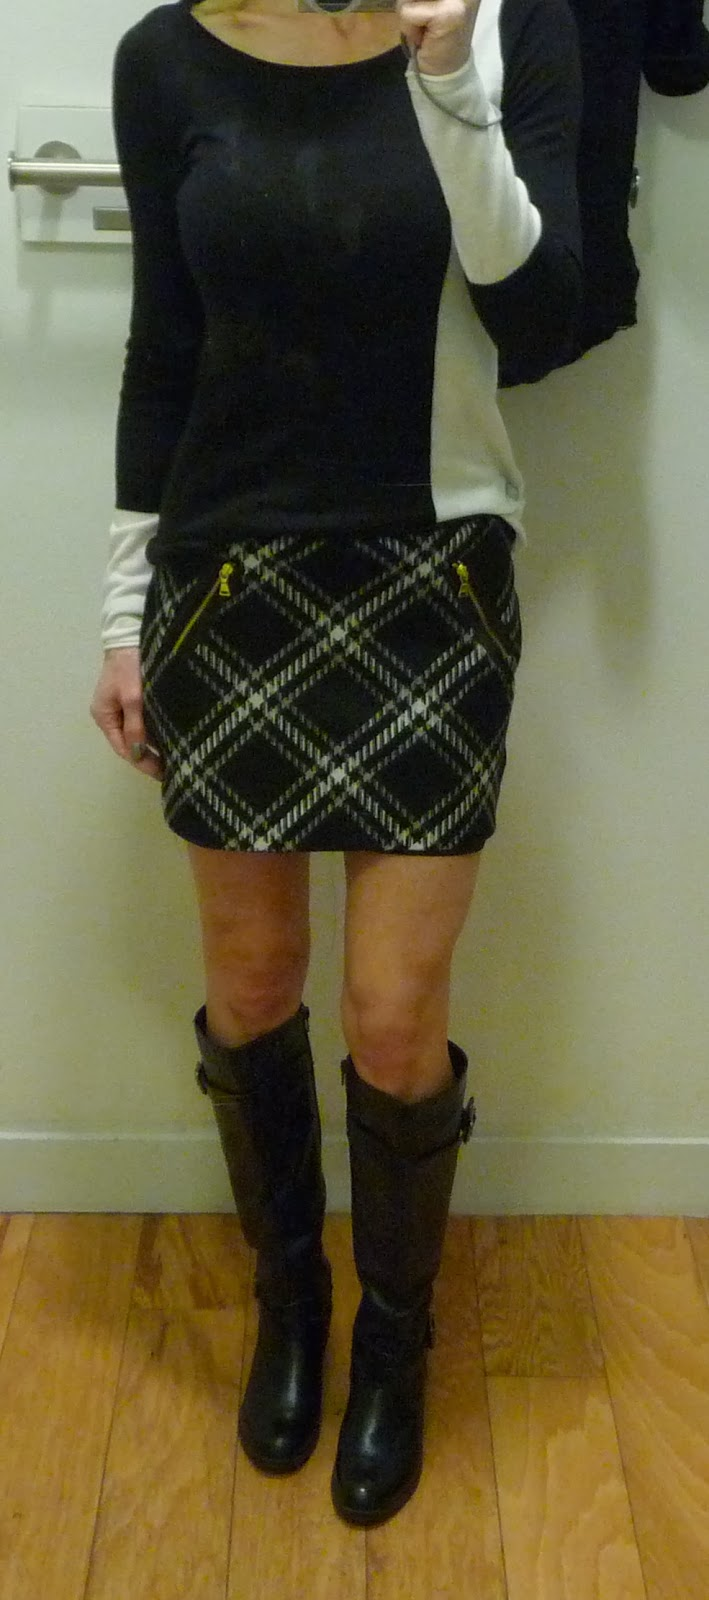 Express color block sweater, black and white, textured tartan plaid mini skirt